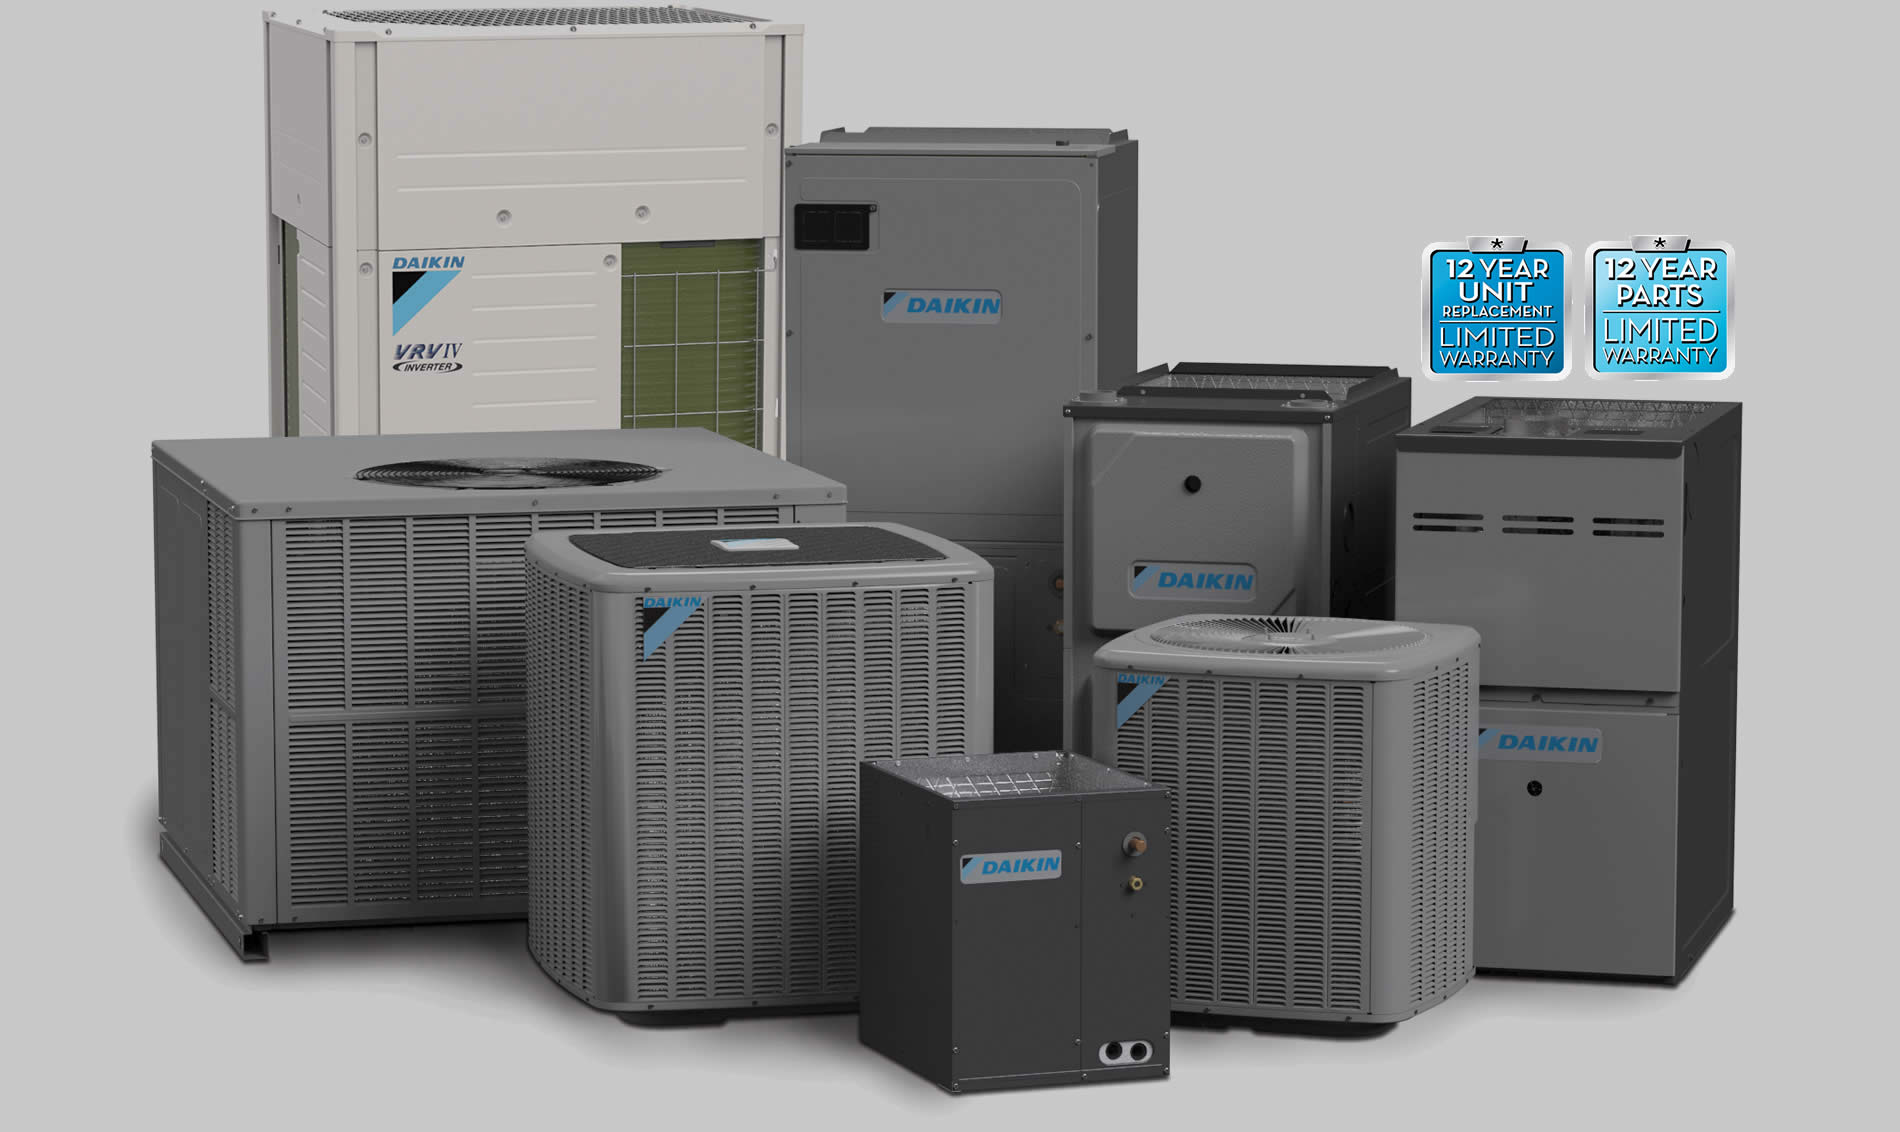 Daikin heating and cooling units in a group